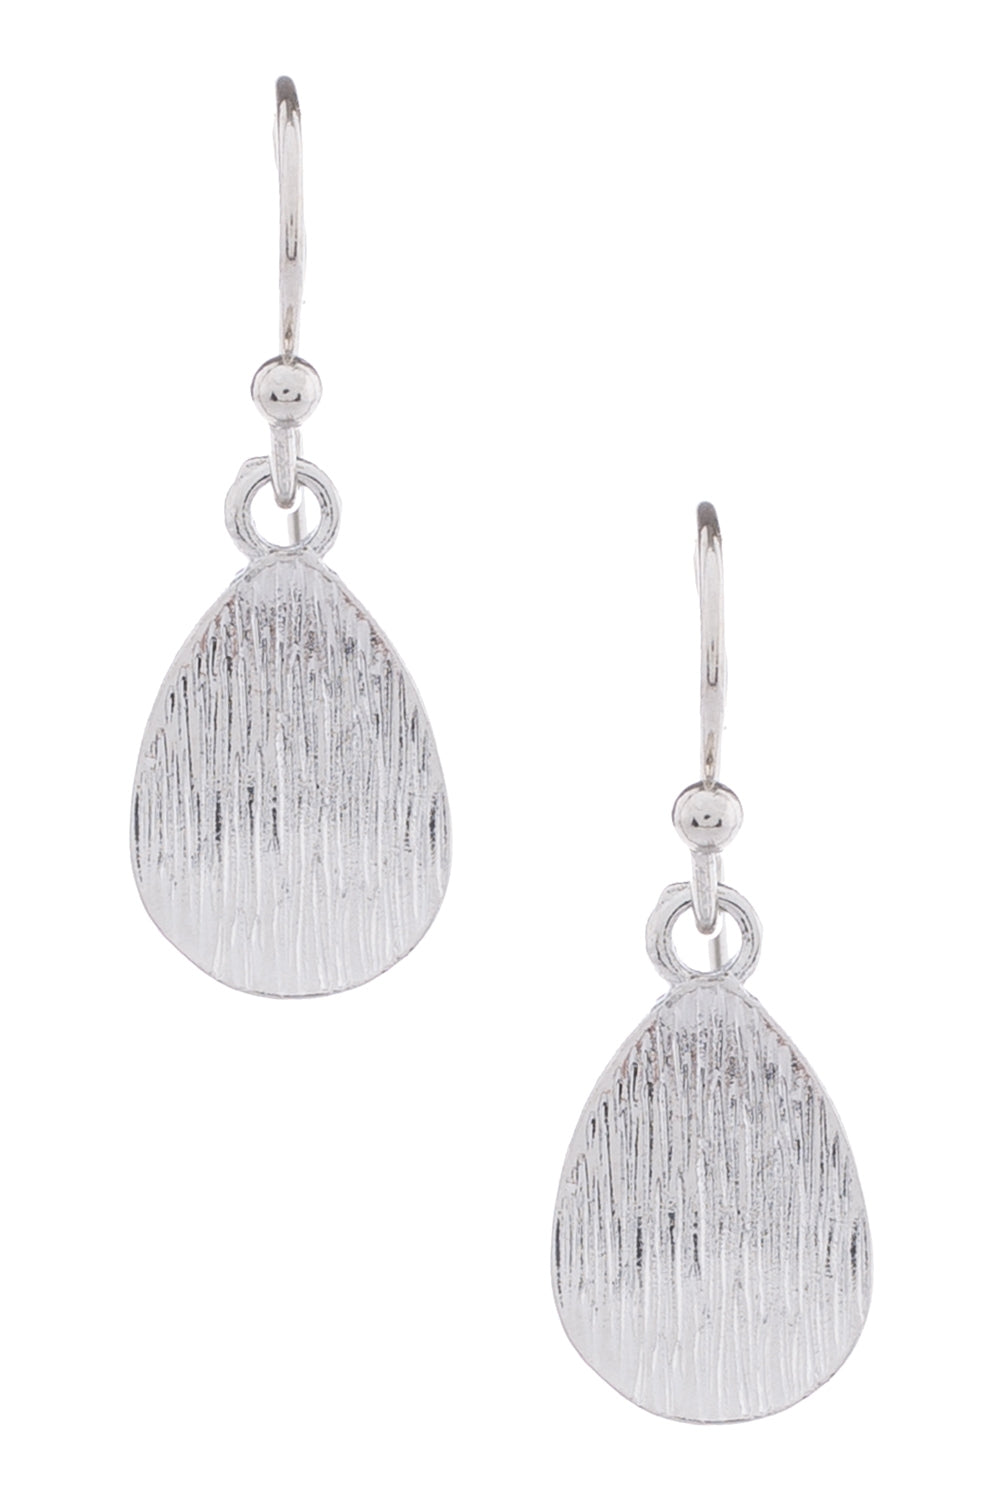 Type 2 Sea Salt Earrings